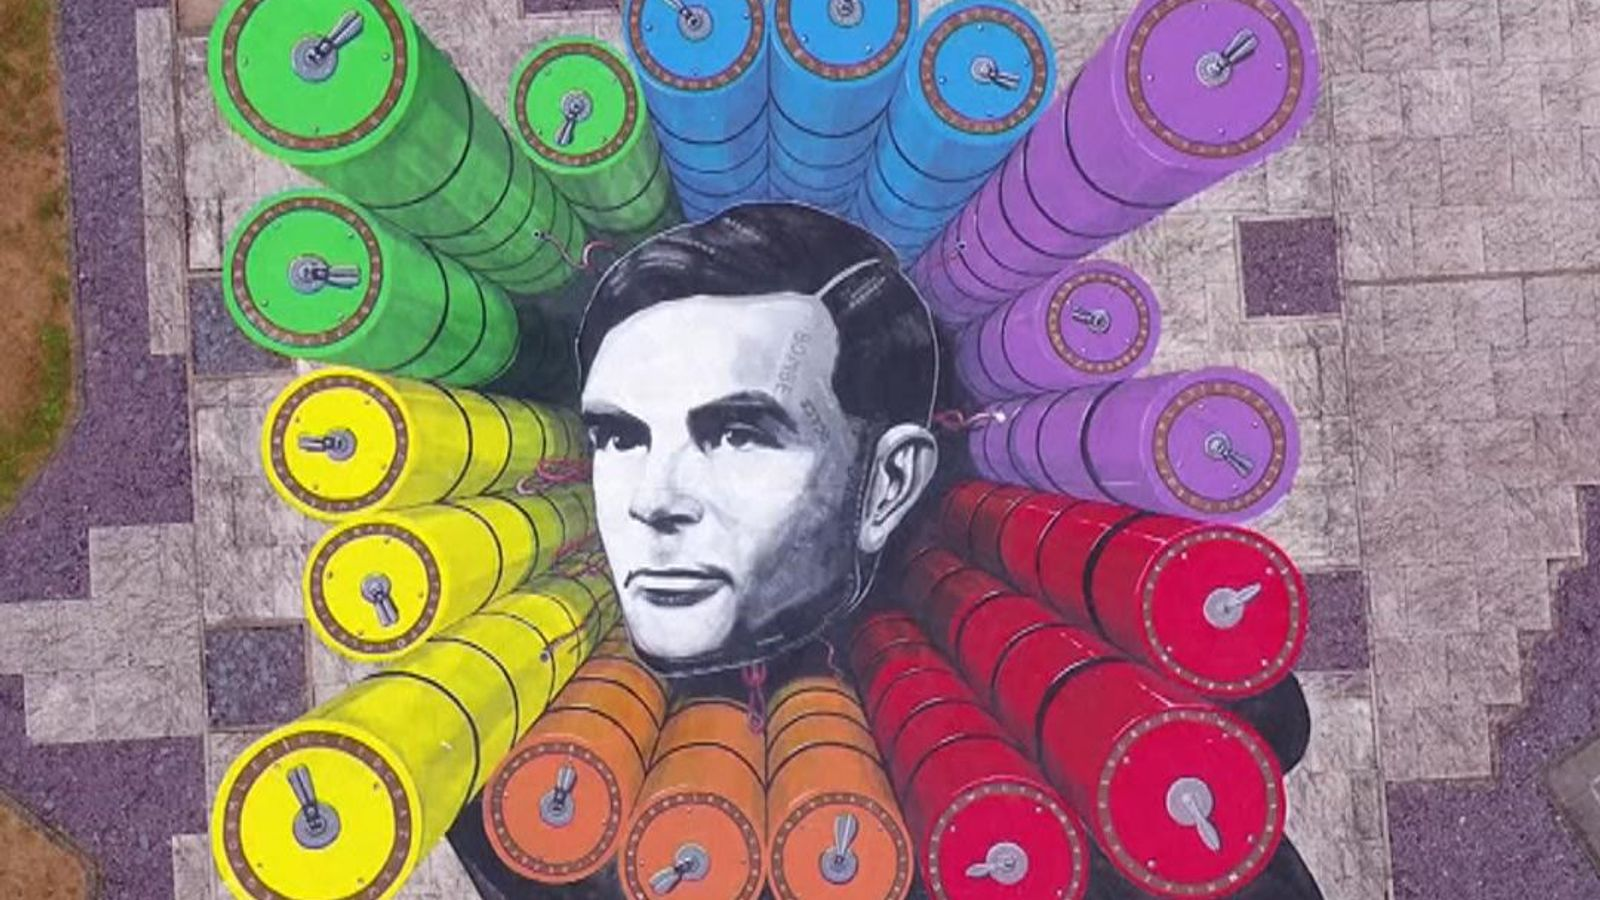 Alan Turing £50 banknote enters circulation - as LGBT-inspired artwork unveiled at GCHQ to honour wartime hero